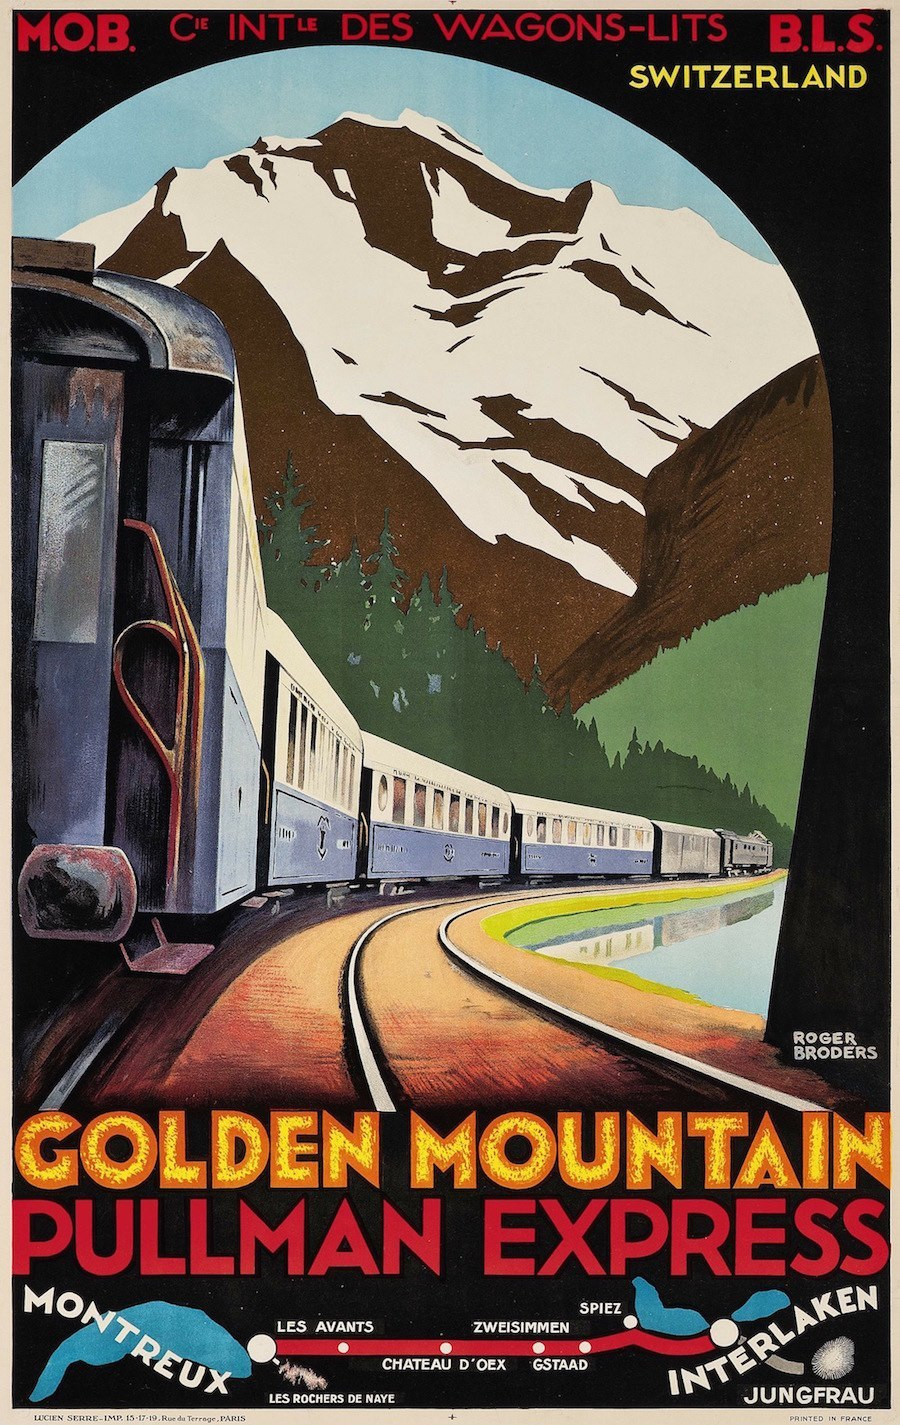 15 Beautiful French Art Deco Travel Posters By Roger Broders